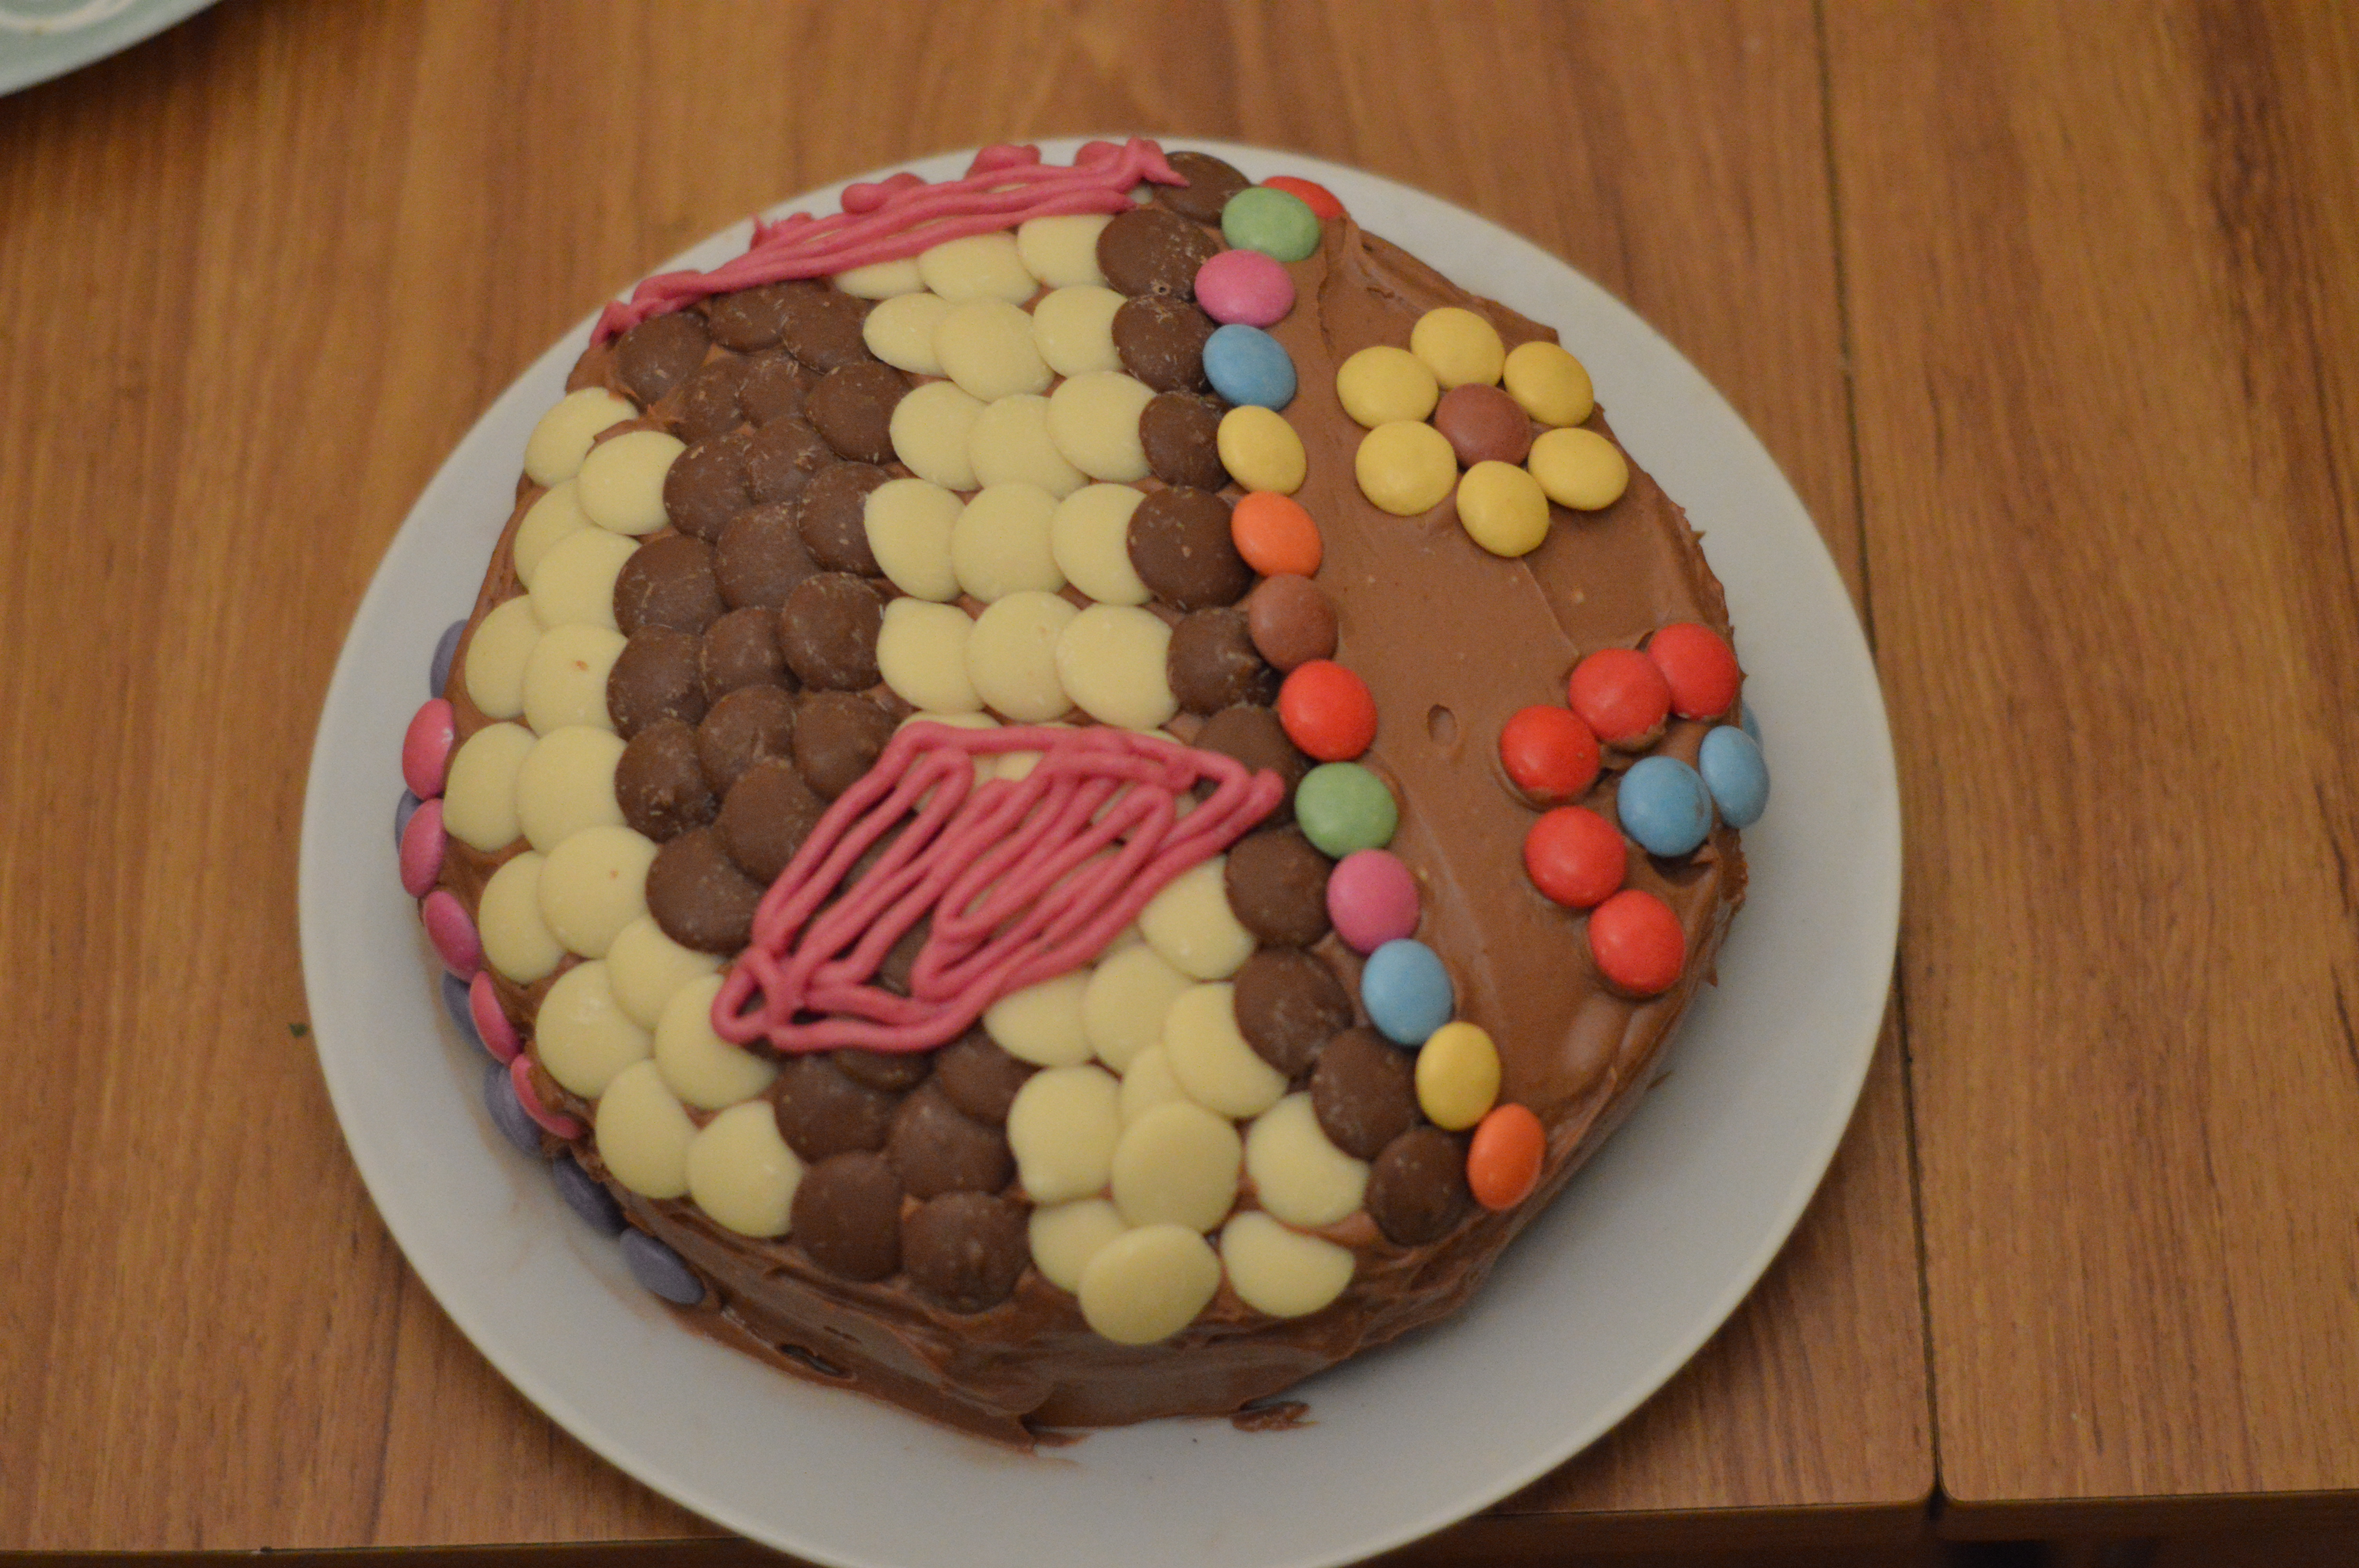 A fishy themed chocolate cake The Bunfight